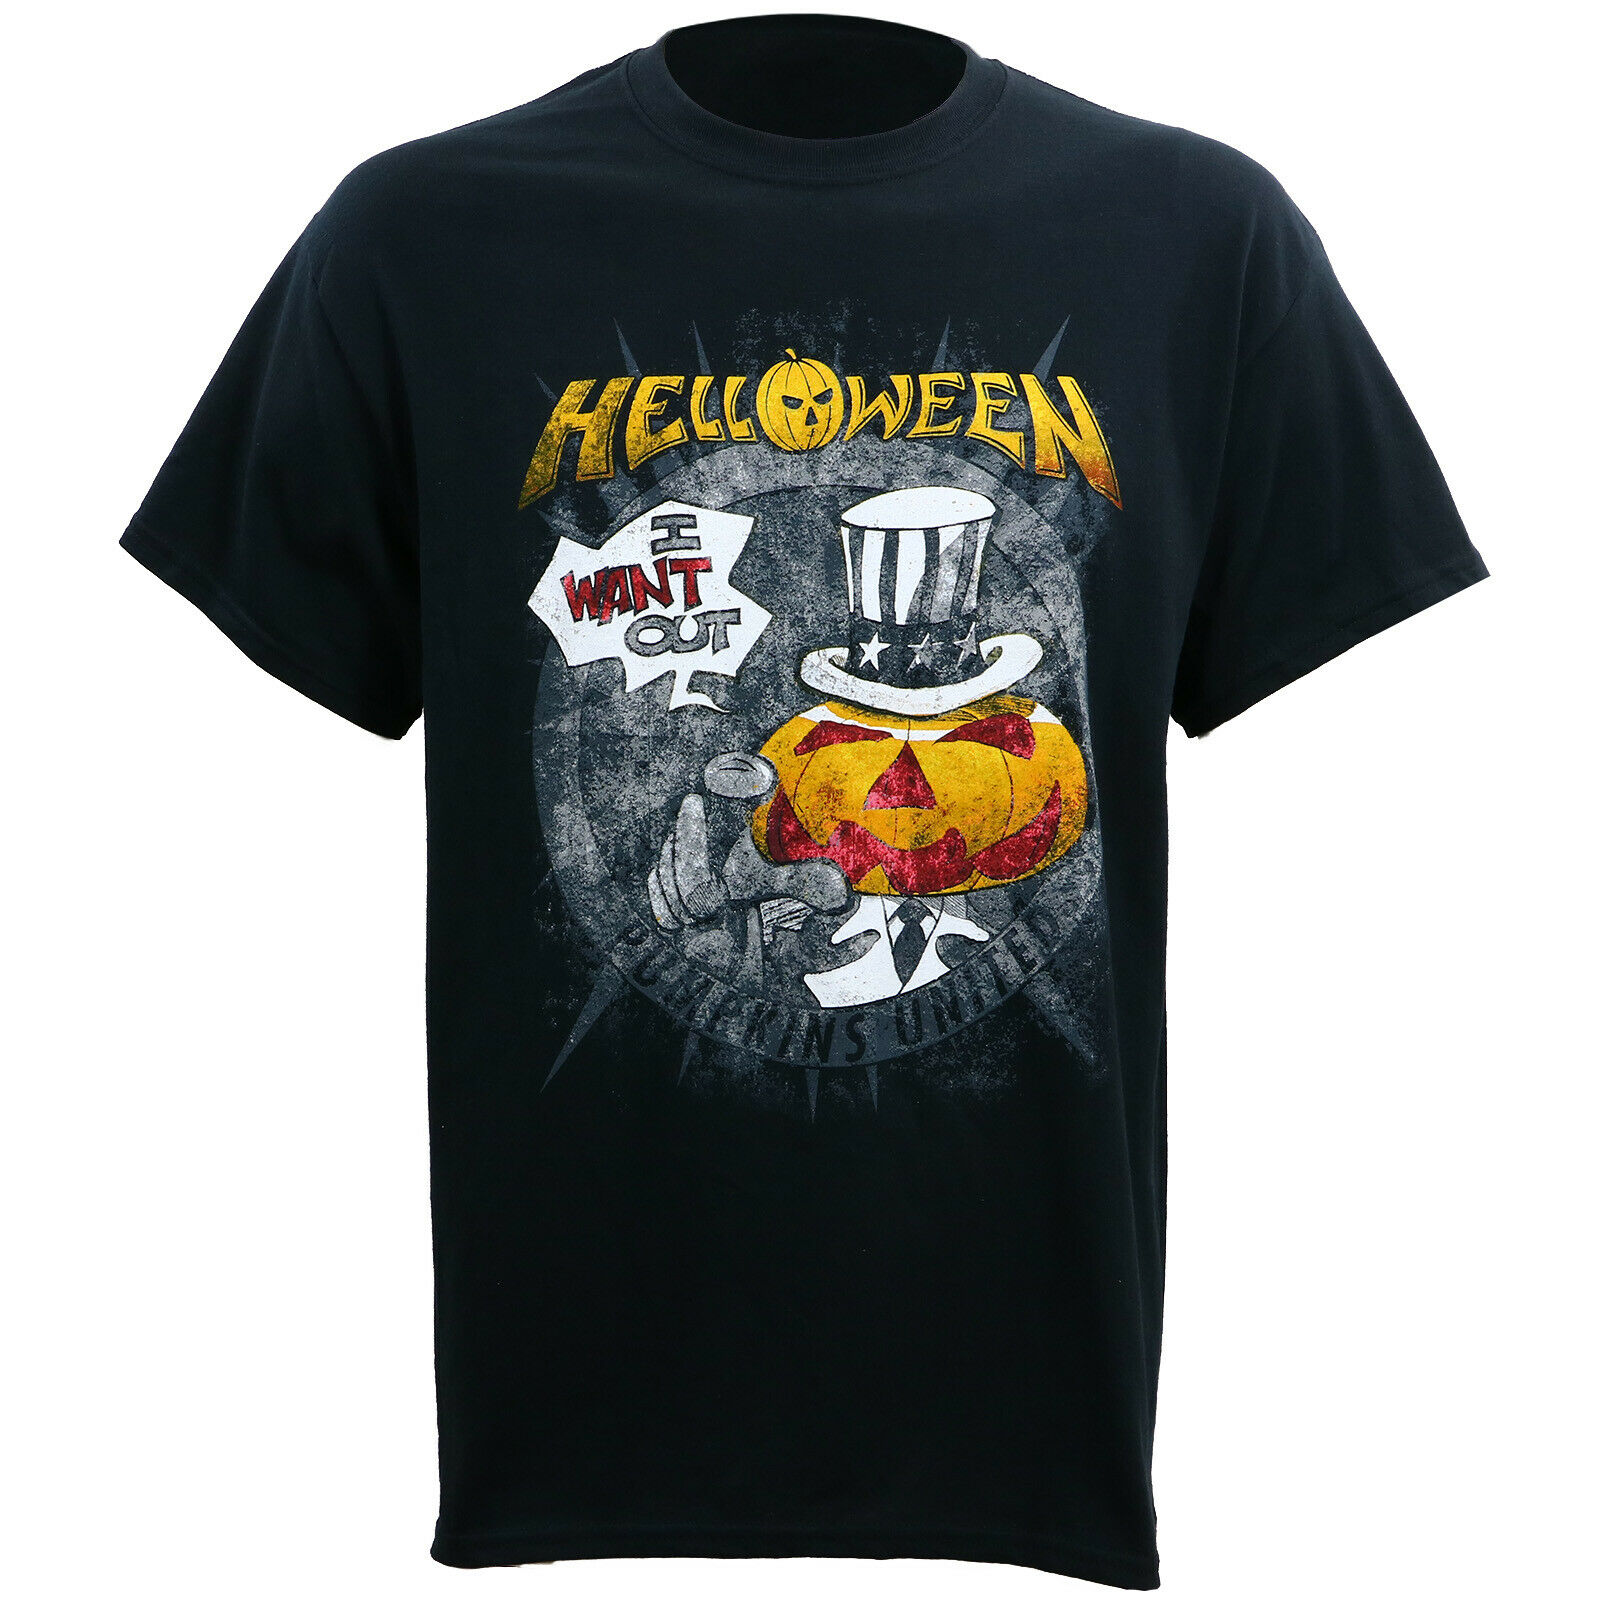 Authentic HELLOWEEN I Want Out Tour T-Shirt S-3XL NEW